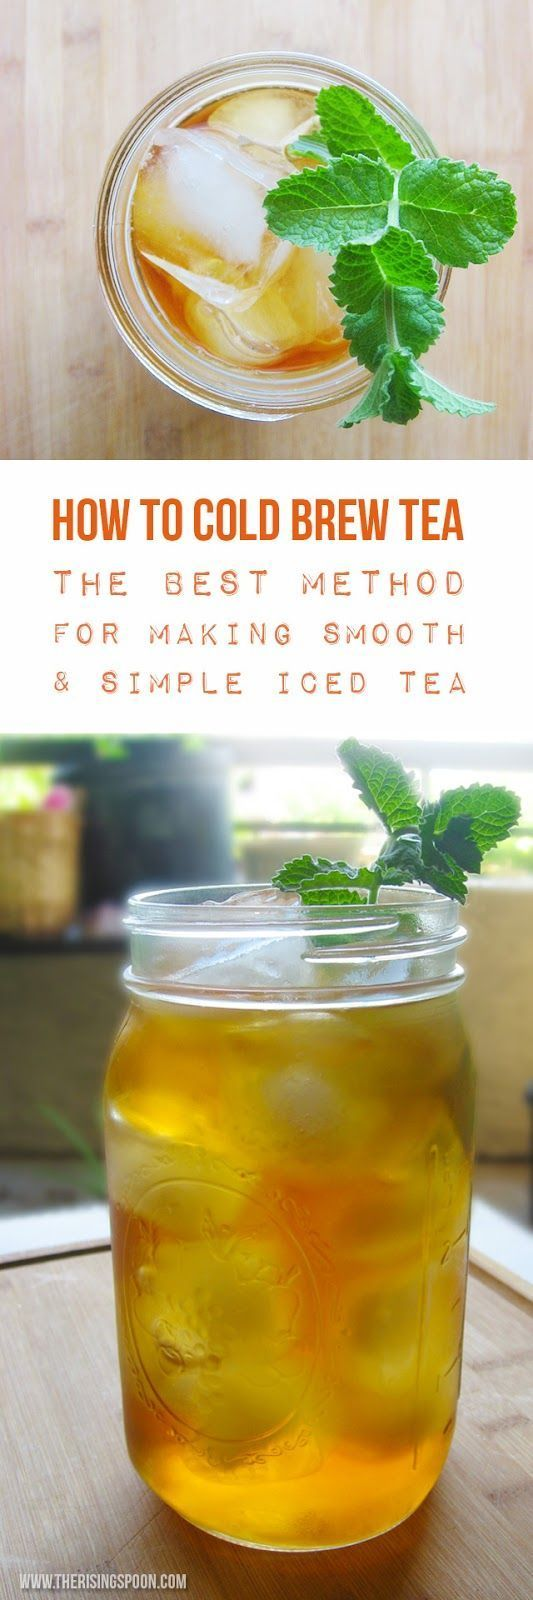 How to Cold Brew Tea: The Best Method for Making Iced Tea. The simplest and possibly tastiest way to make iced tea all year long. Because the cold water is gentler on the leaves, there is less chance for bitterness. Nobody likes bitter tea, right? | Real Food Recipe | Drinks | Summer | Paleo | Vegan | DIY | Healthy |